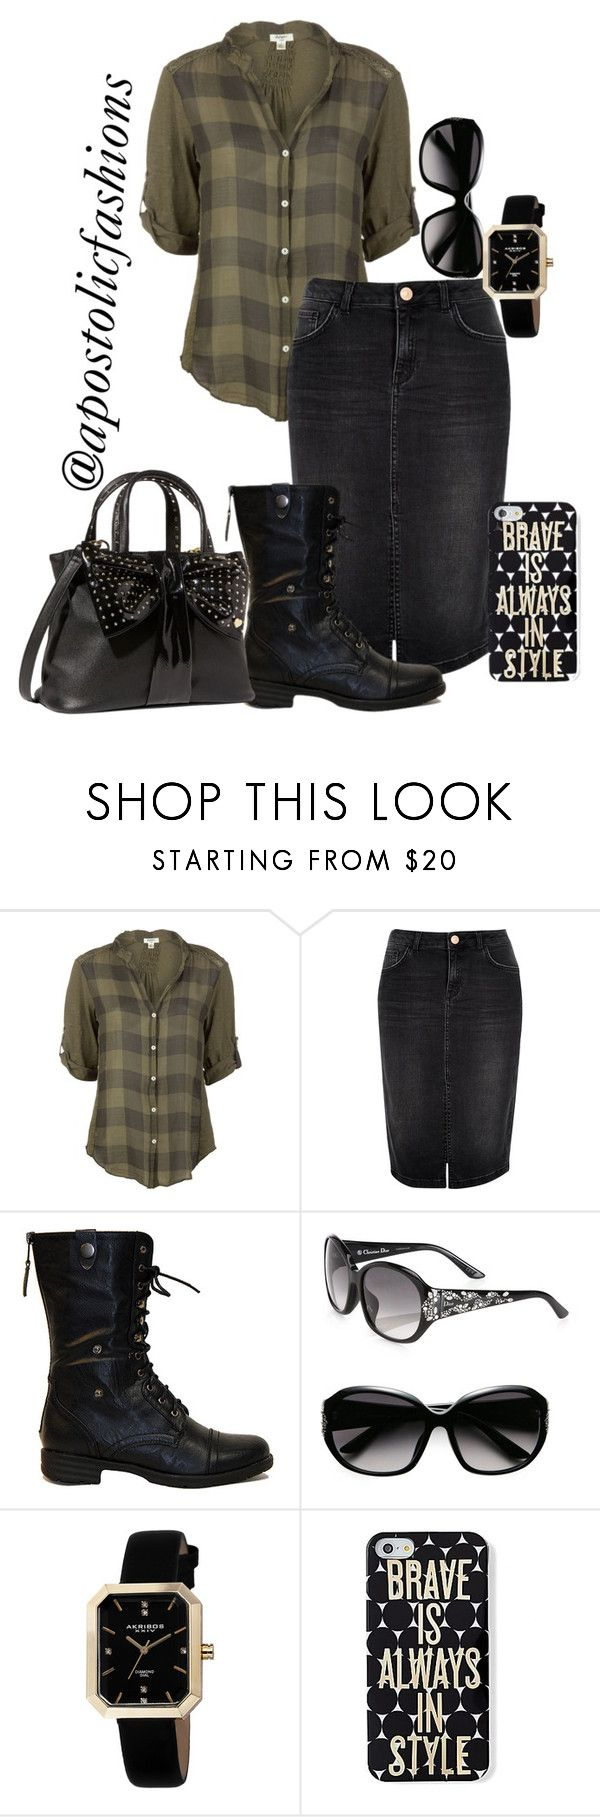 """""""Apostolic Fashions #1128"""" by apostolicfashions on Polyvore featuring Dylan, River Island, Reneeze, Christian Dior, Akribos XXIV, Keds and Betsey Johnson"""